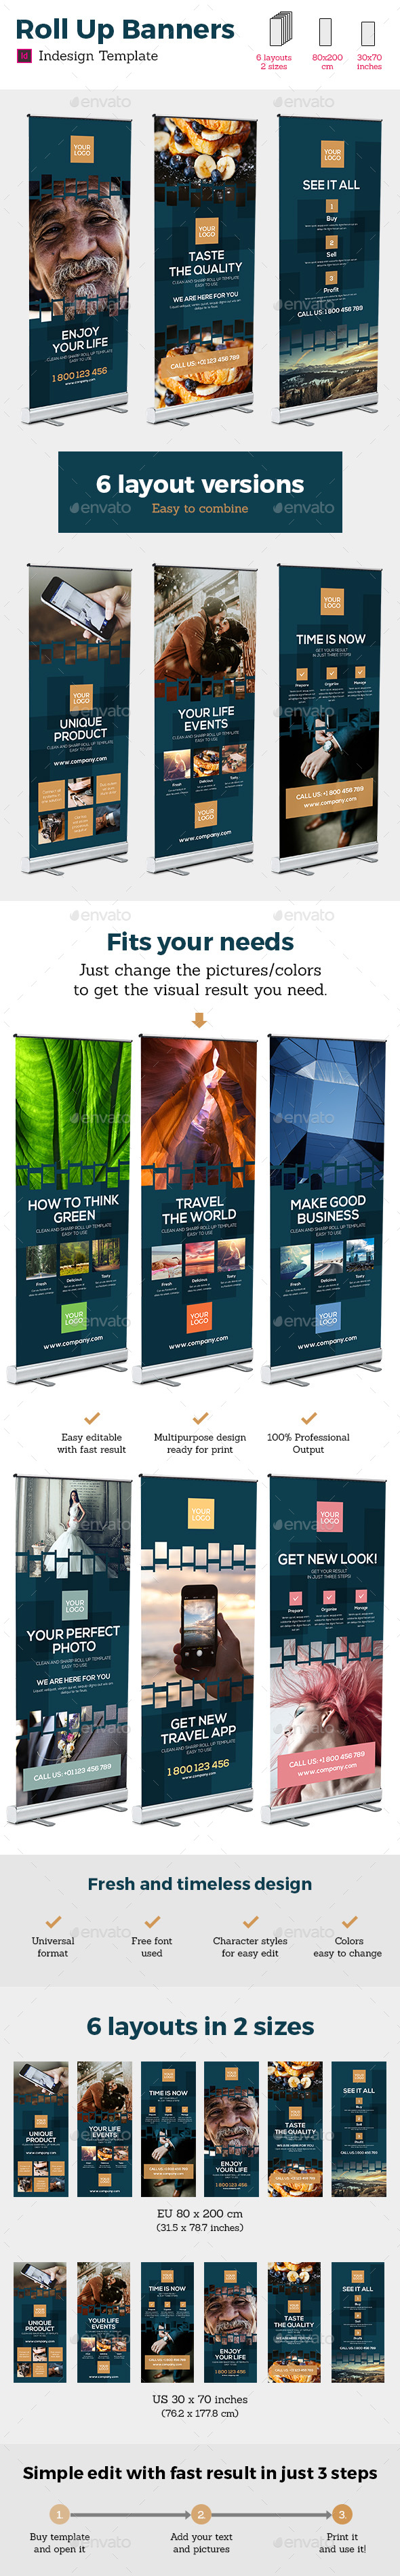 Rollup Stand Banner Display Digital Dark 12x Indesign Template - Signage Print Templates